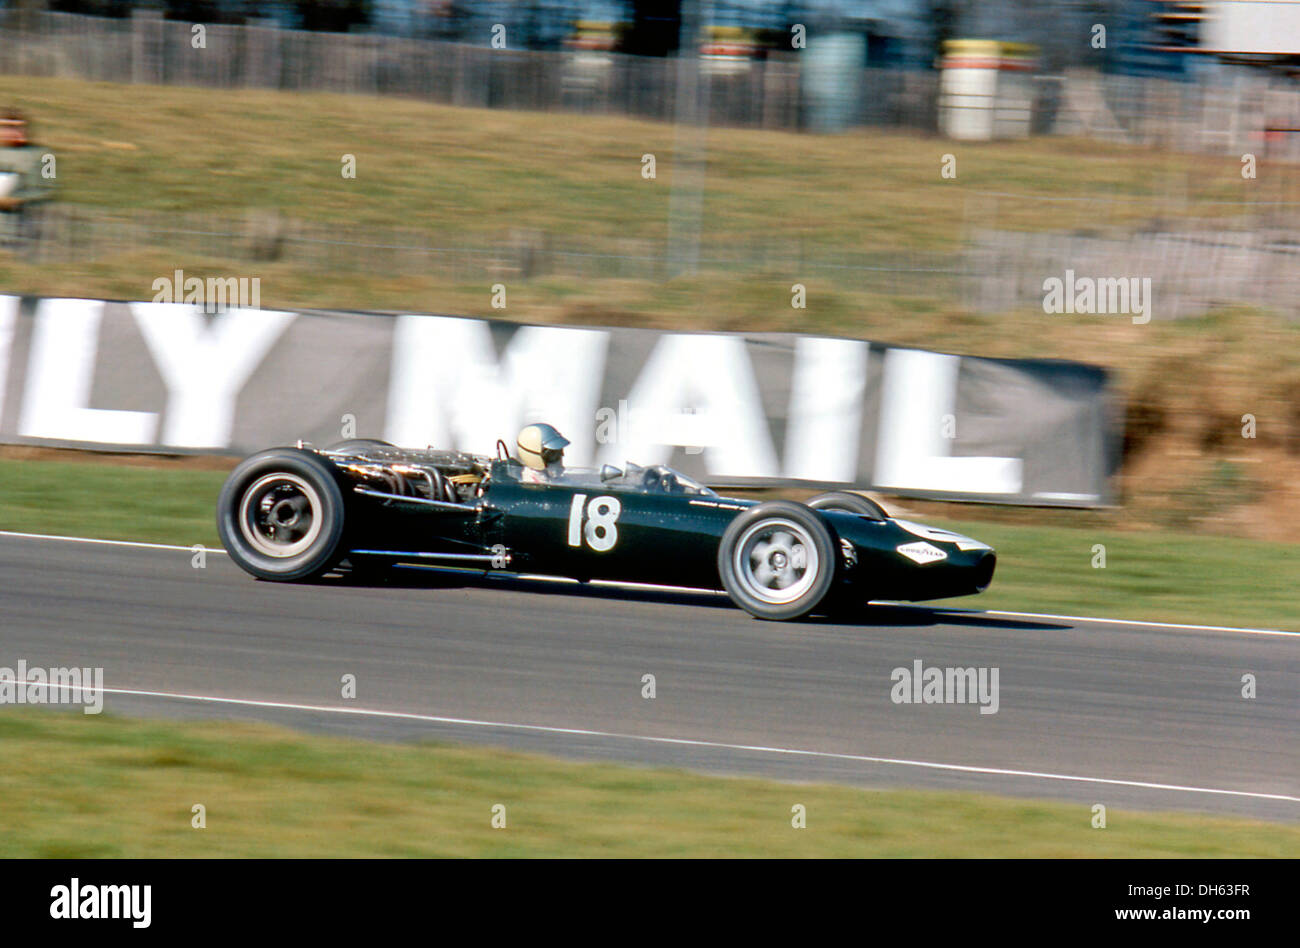 David Hobbs in Bernard White's BRM P261 with 3-litre V12 engine. Brands Hatch, England 17 March 1969. - Stock Image